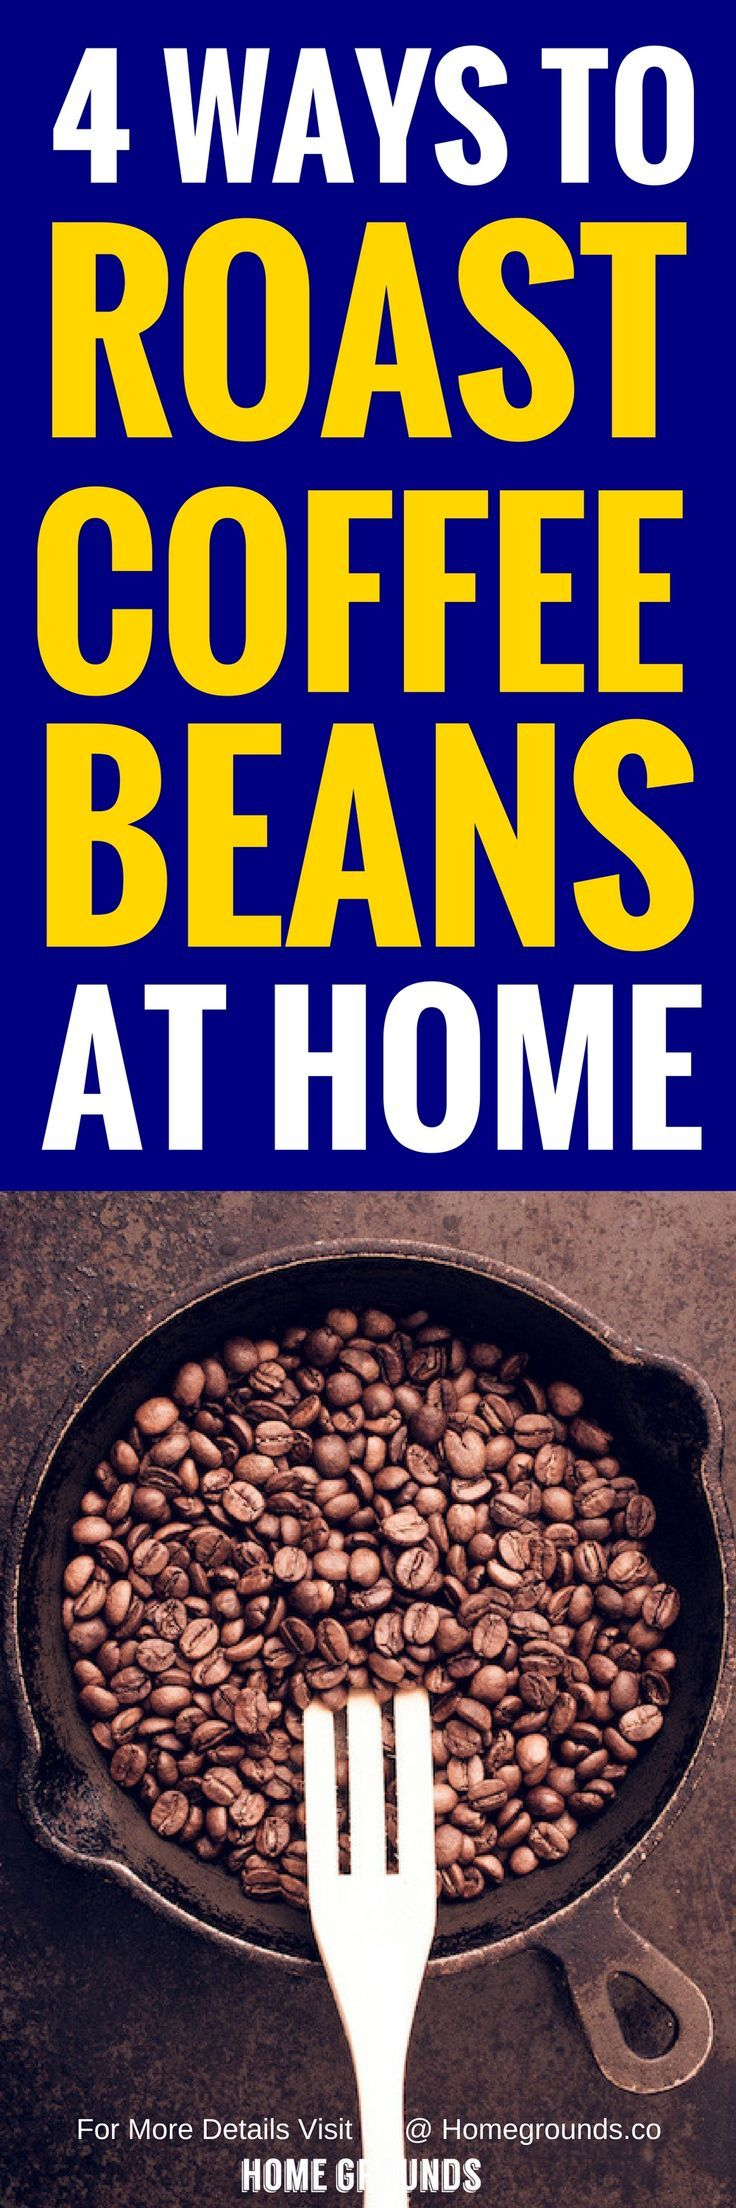 How to Roast Coffee Beans at Home 4 Options (Beware of 1